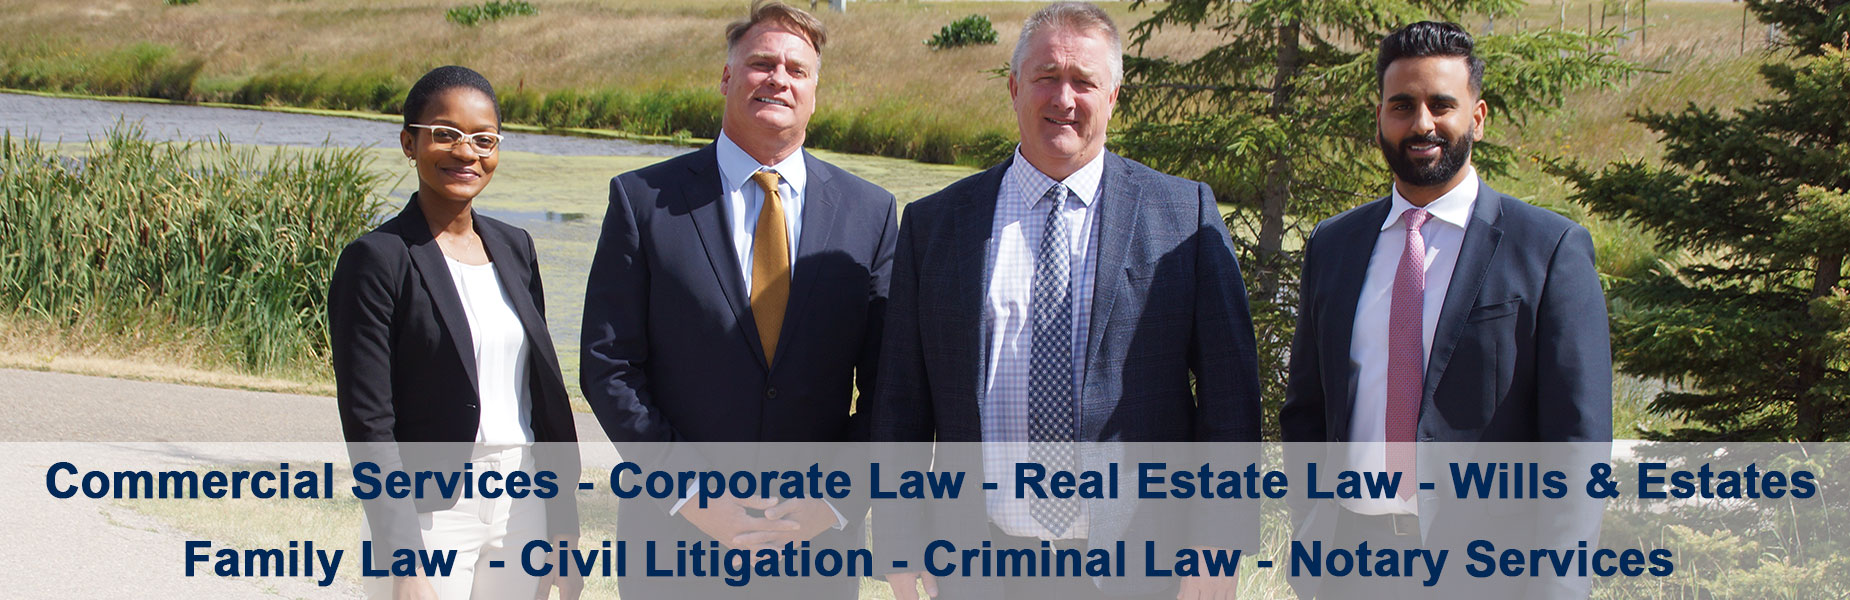 Airdrie Lawyers is a well-established Airdrie Law firm offering a wide variety of legal services.